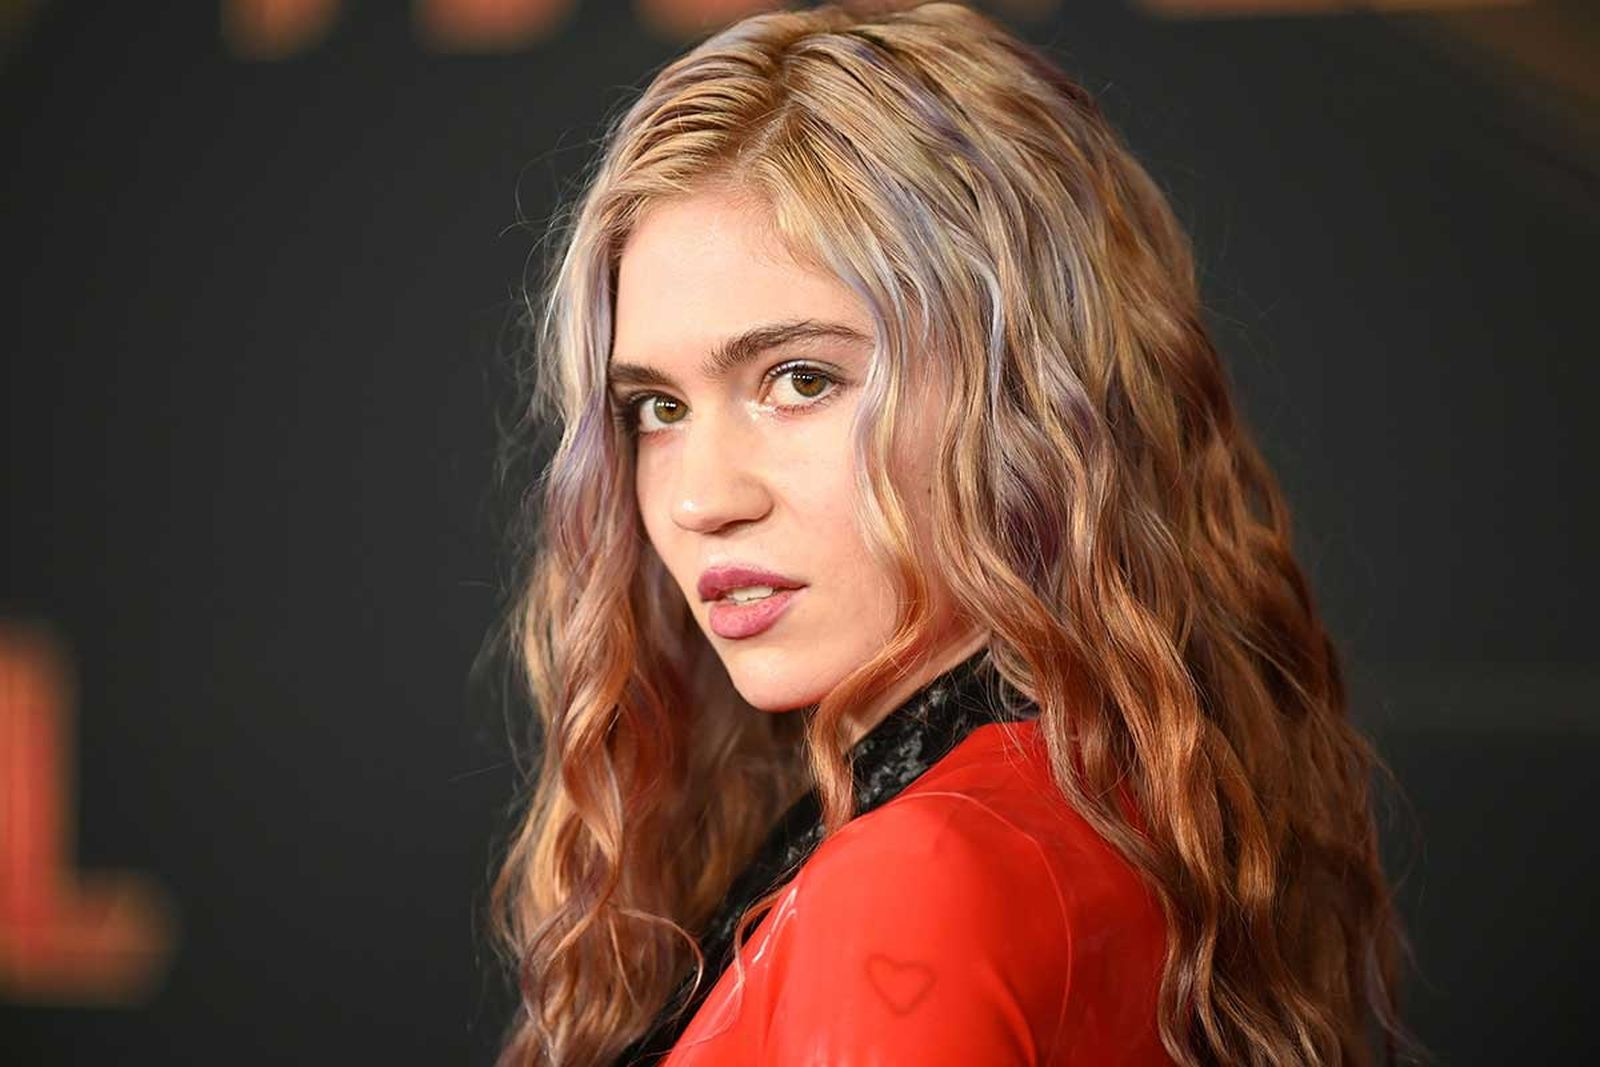 Grimes on the red carpet